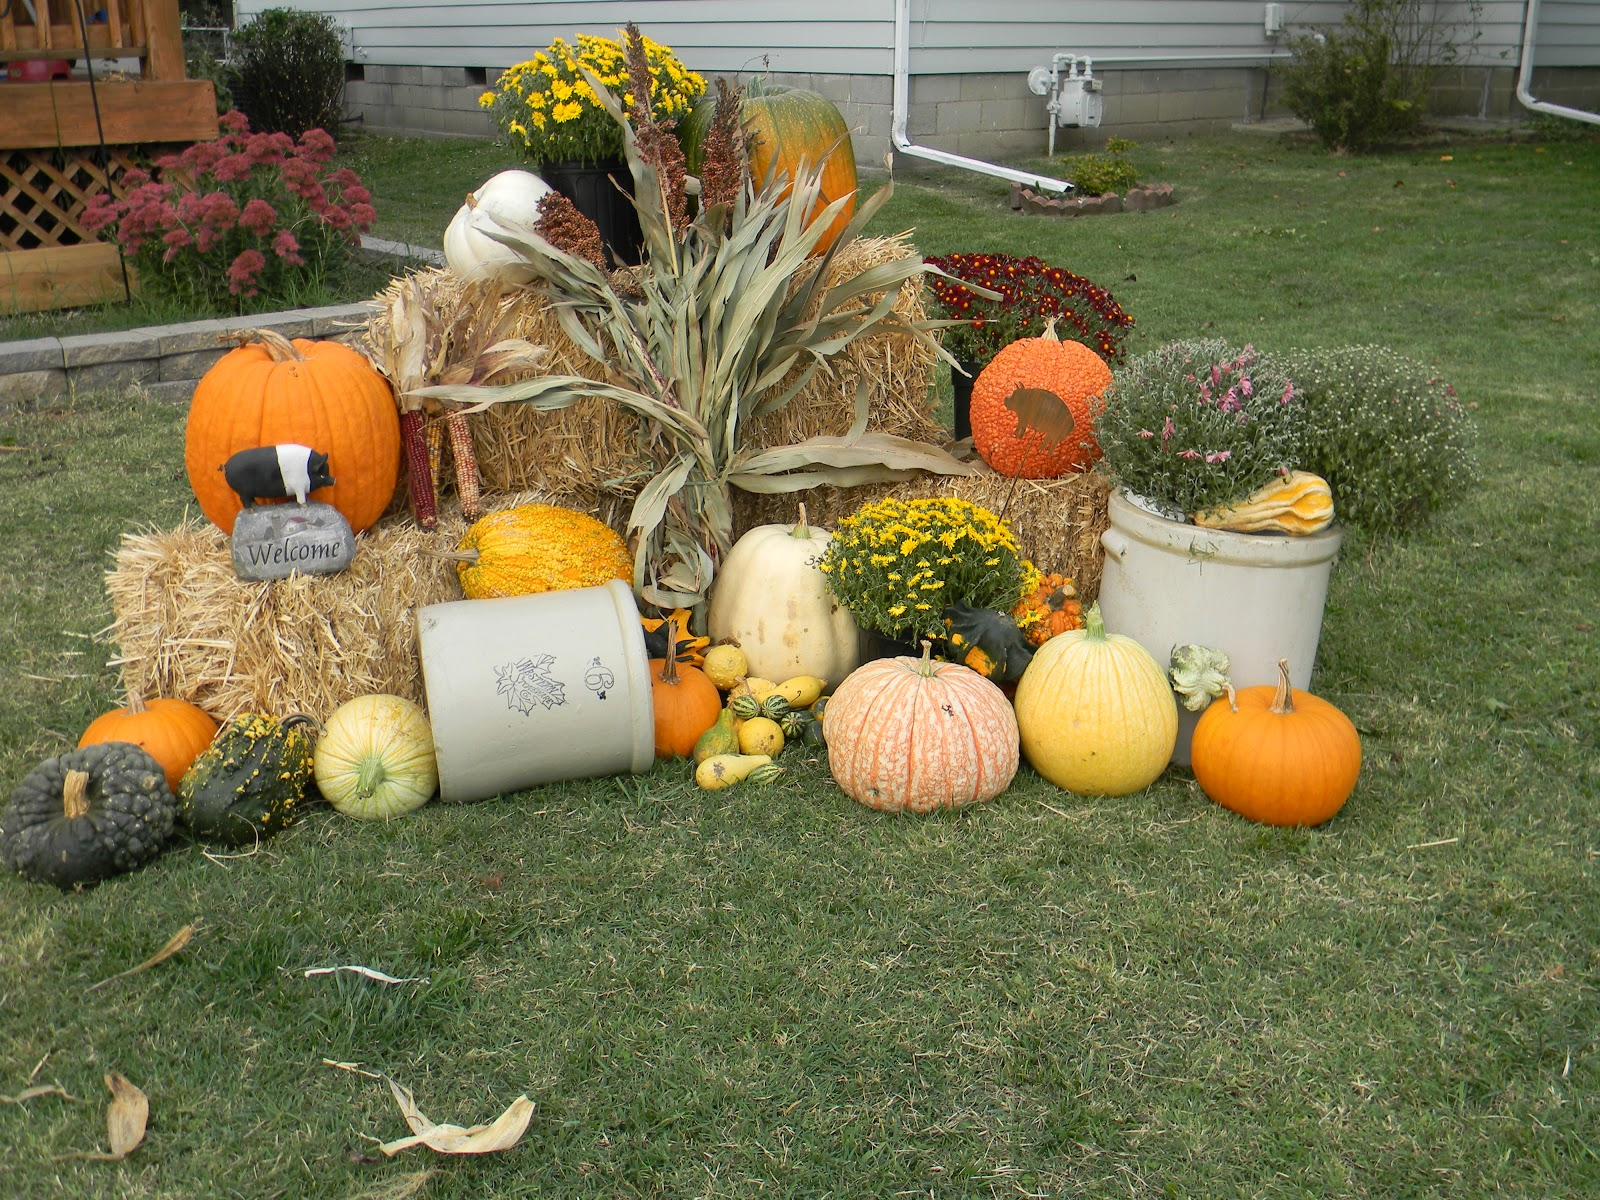 Fall Yard Decor and Stone Crocks